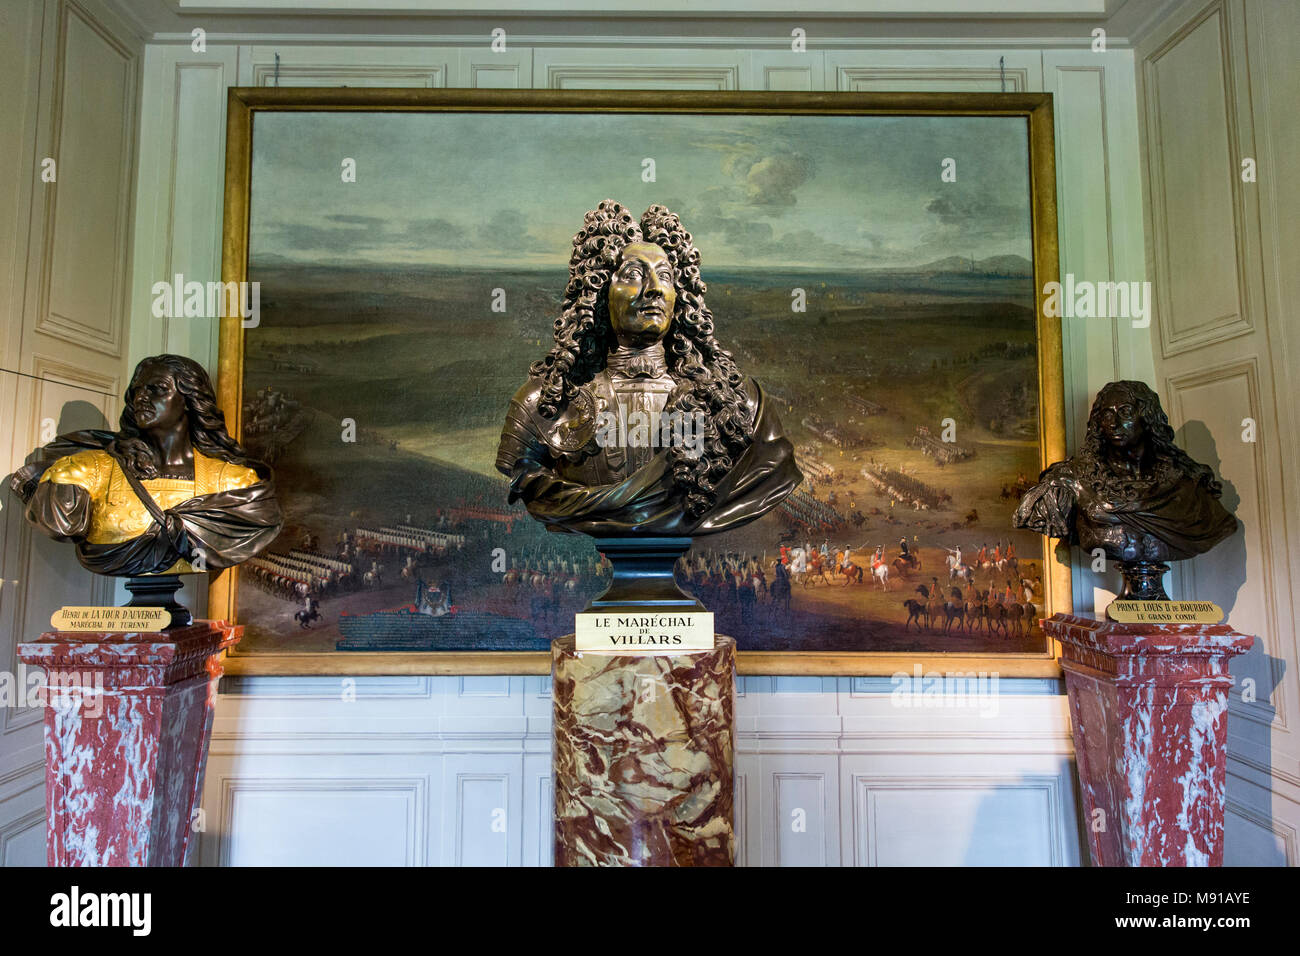 Vaux-le-vicomte castle. The Marshall's anteroom. Busts. France. - Stock Image